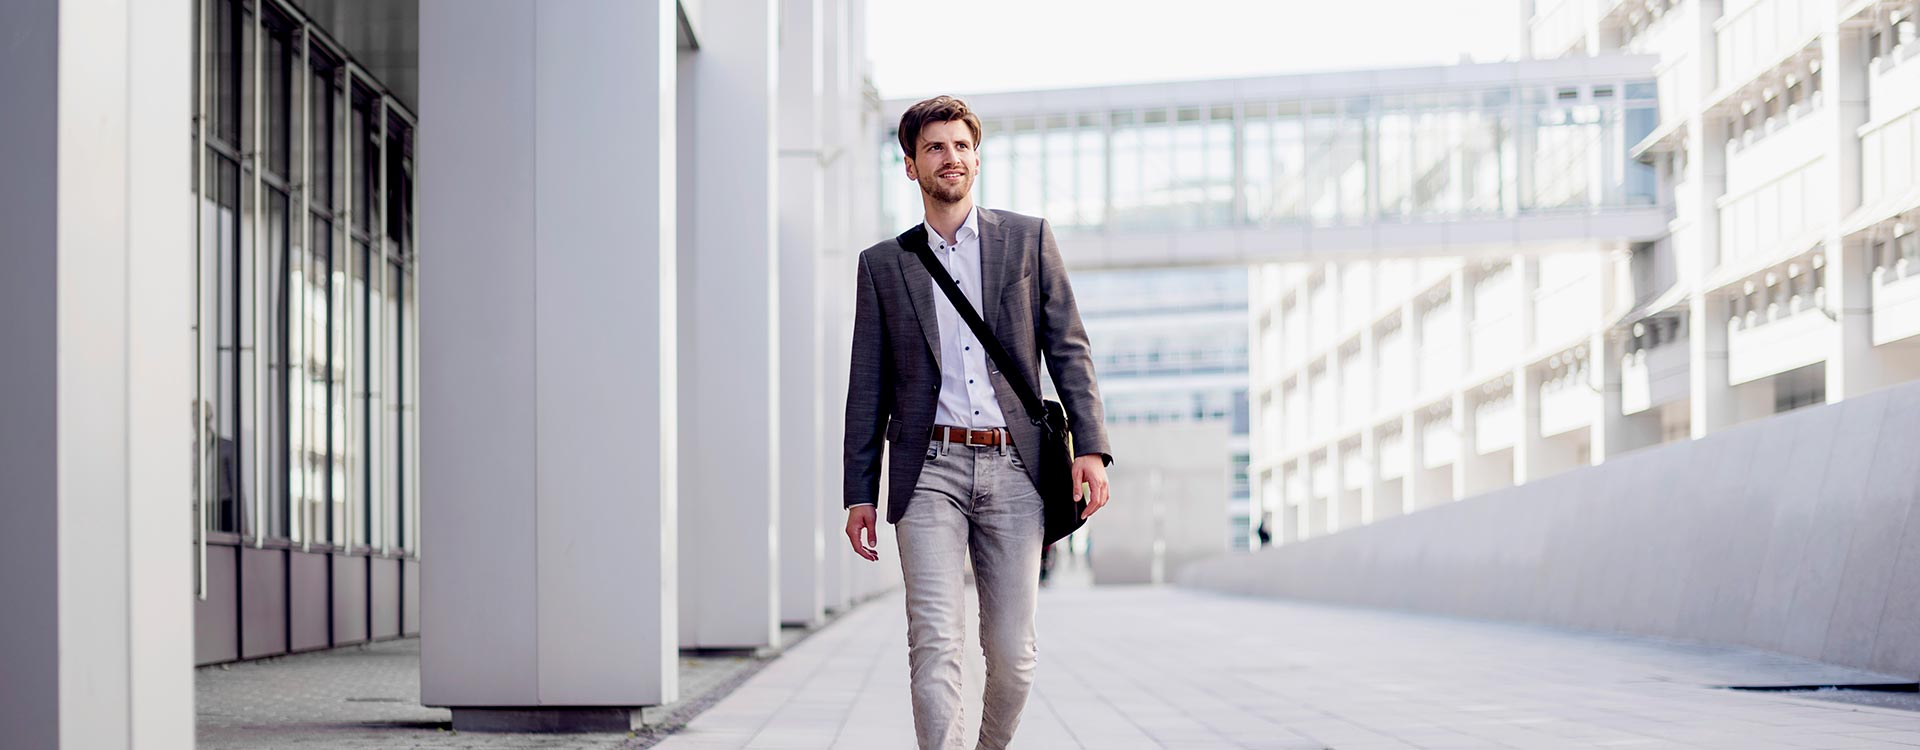 Male Professional Walking into Office Building